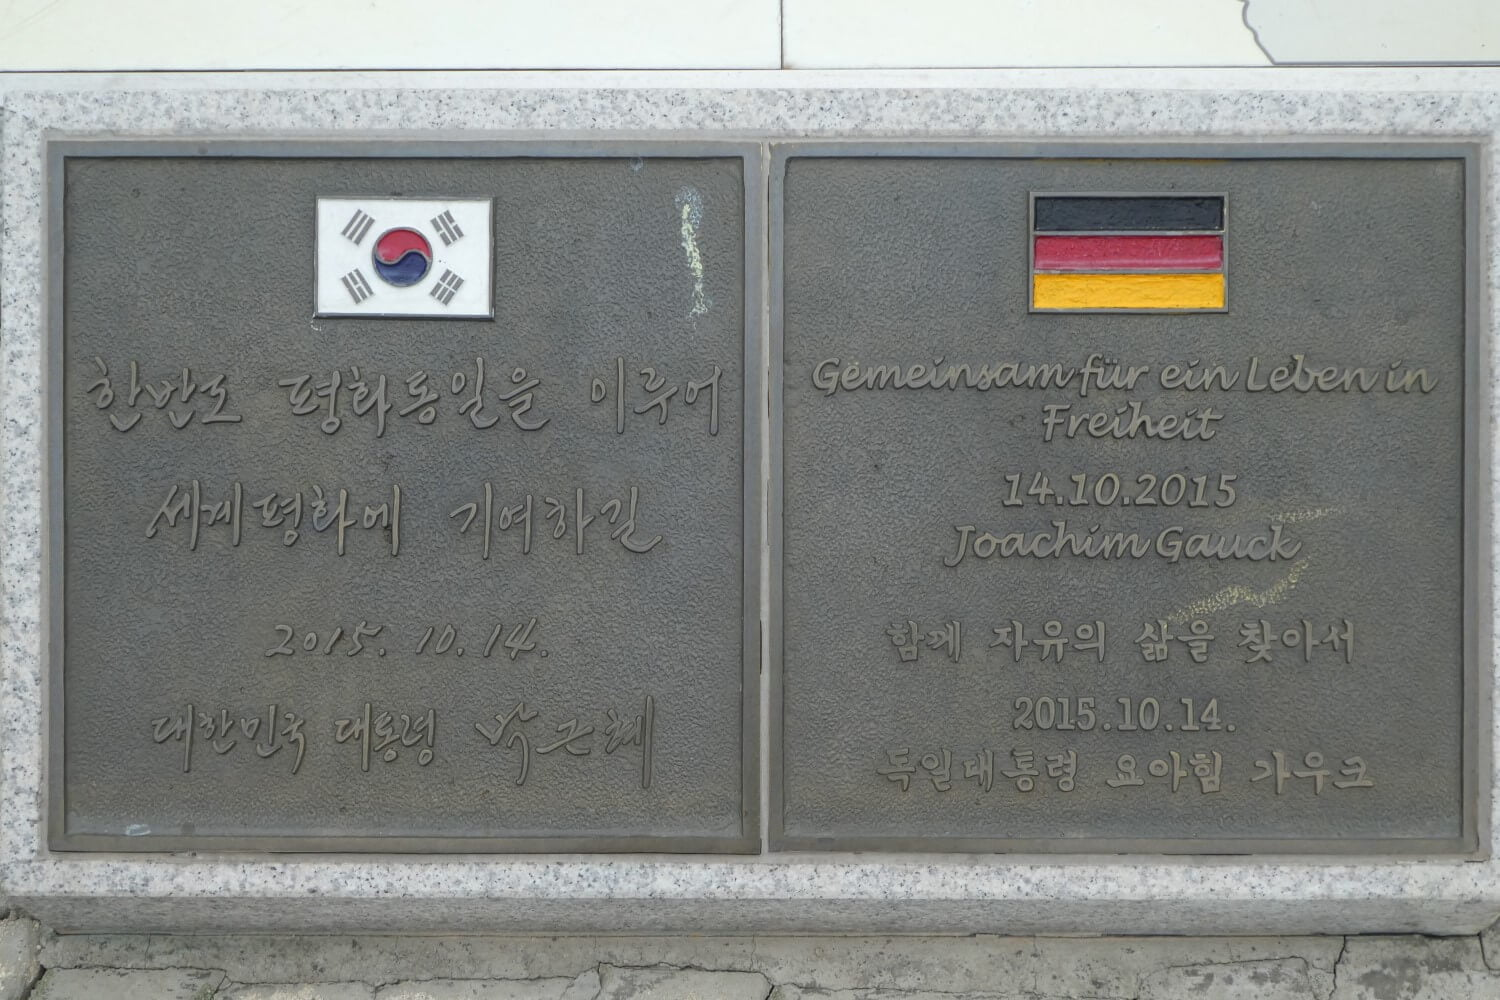 The conflicts of Germany and Korea